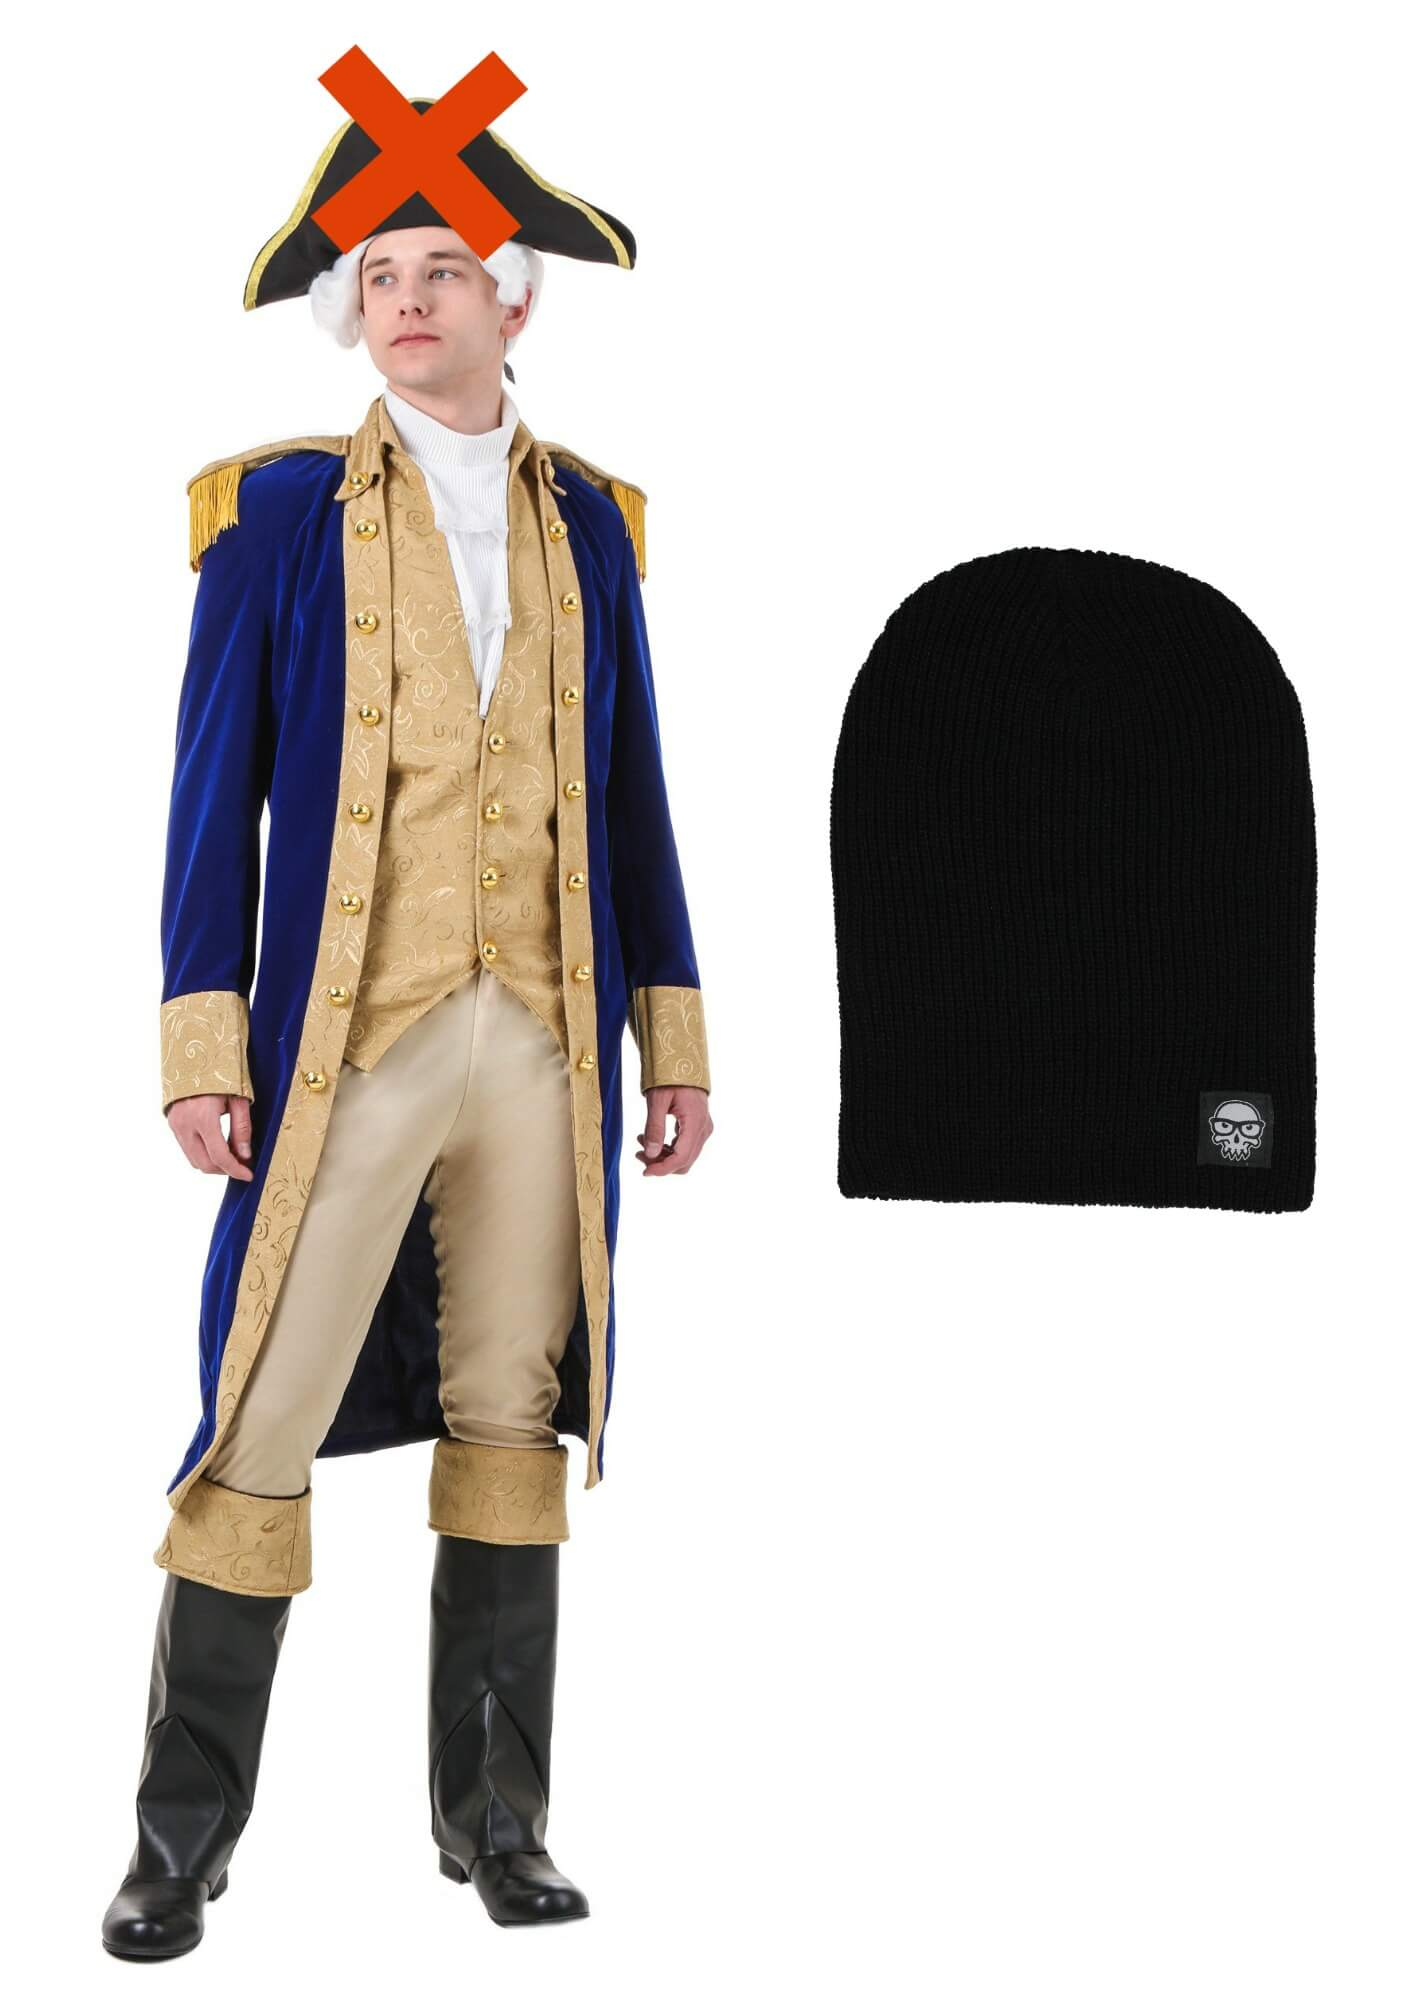 Diy hamilton costume ideas that will leave you satisfied halloween by okieriete onaodowan as a busta rhymes esque rapper so your costume will need to do as he did and ditch the old hat and wig for a black stocking cap solutioingenieria Image collections